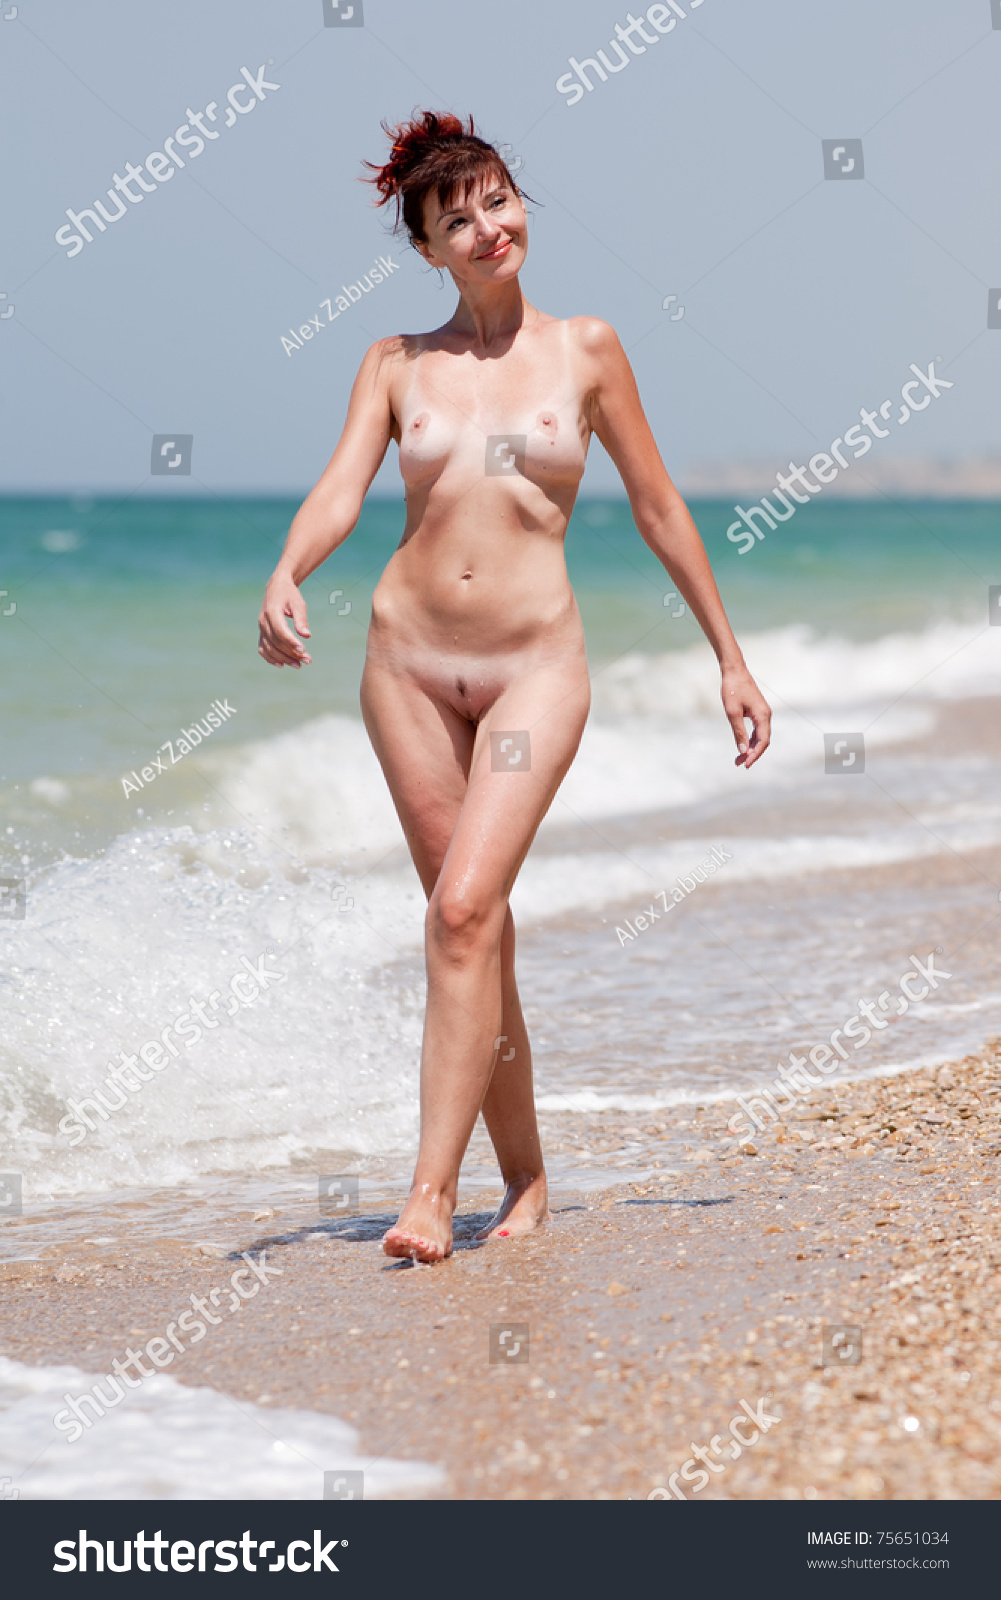 Middle aged nude women on beaches